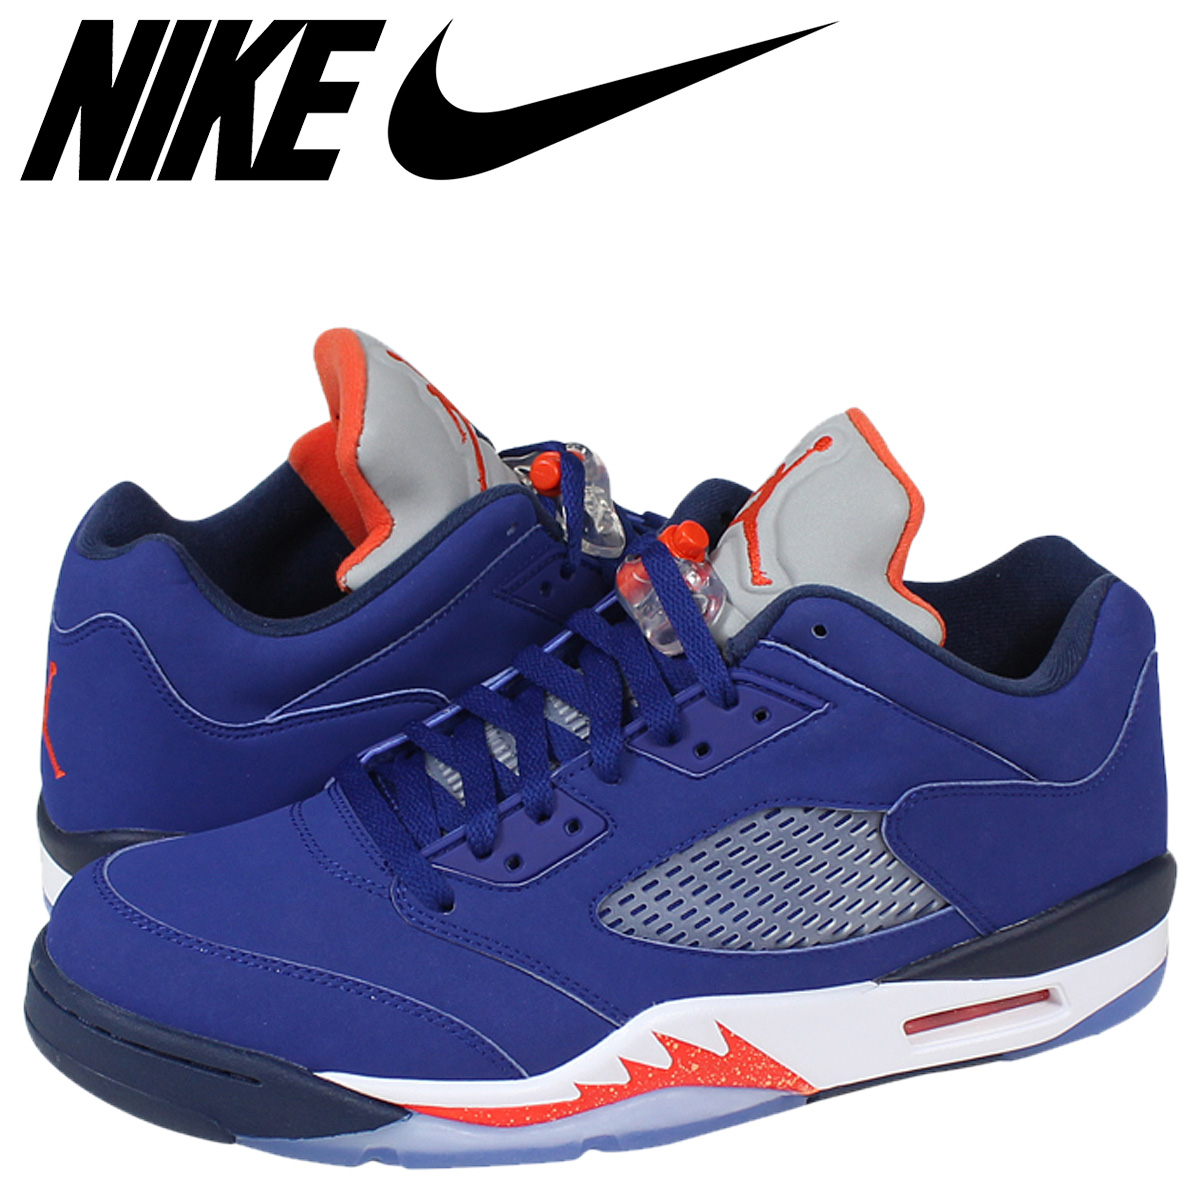 933cb8cdbaa ... clearance nike nike air jordan sneakers air jordan 5 retro low knicks  air jordan 5 retro